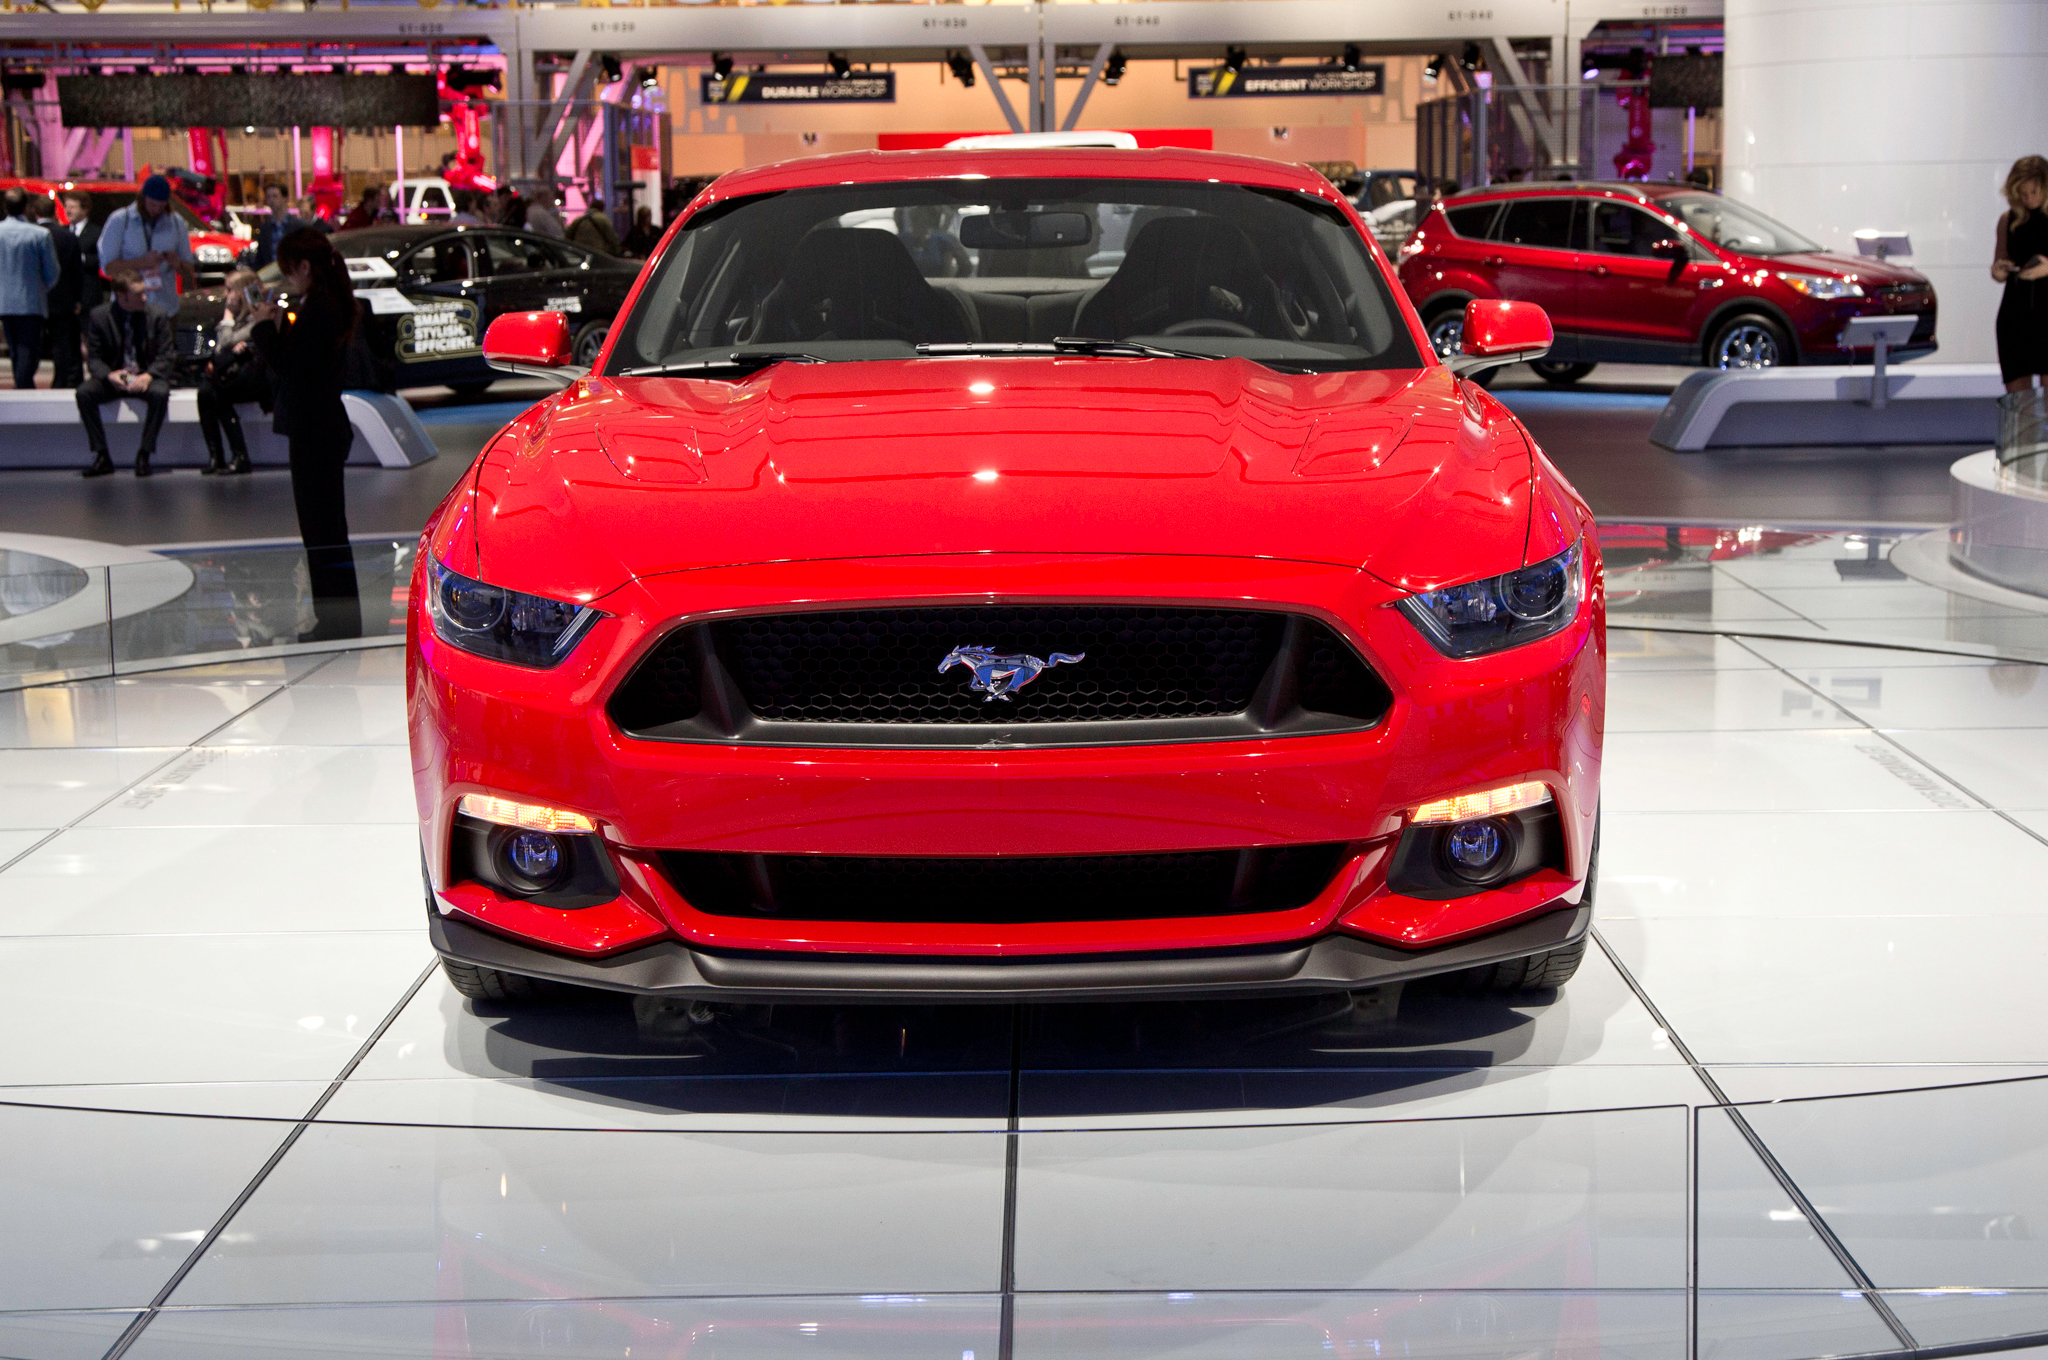 2015 Ford Mustang Gt Front Photo (Photo 12 of 30)